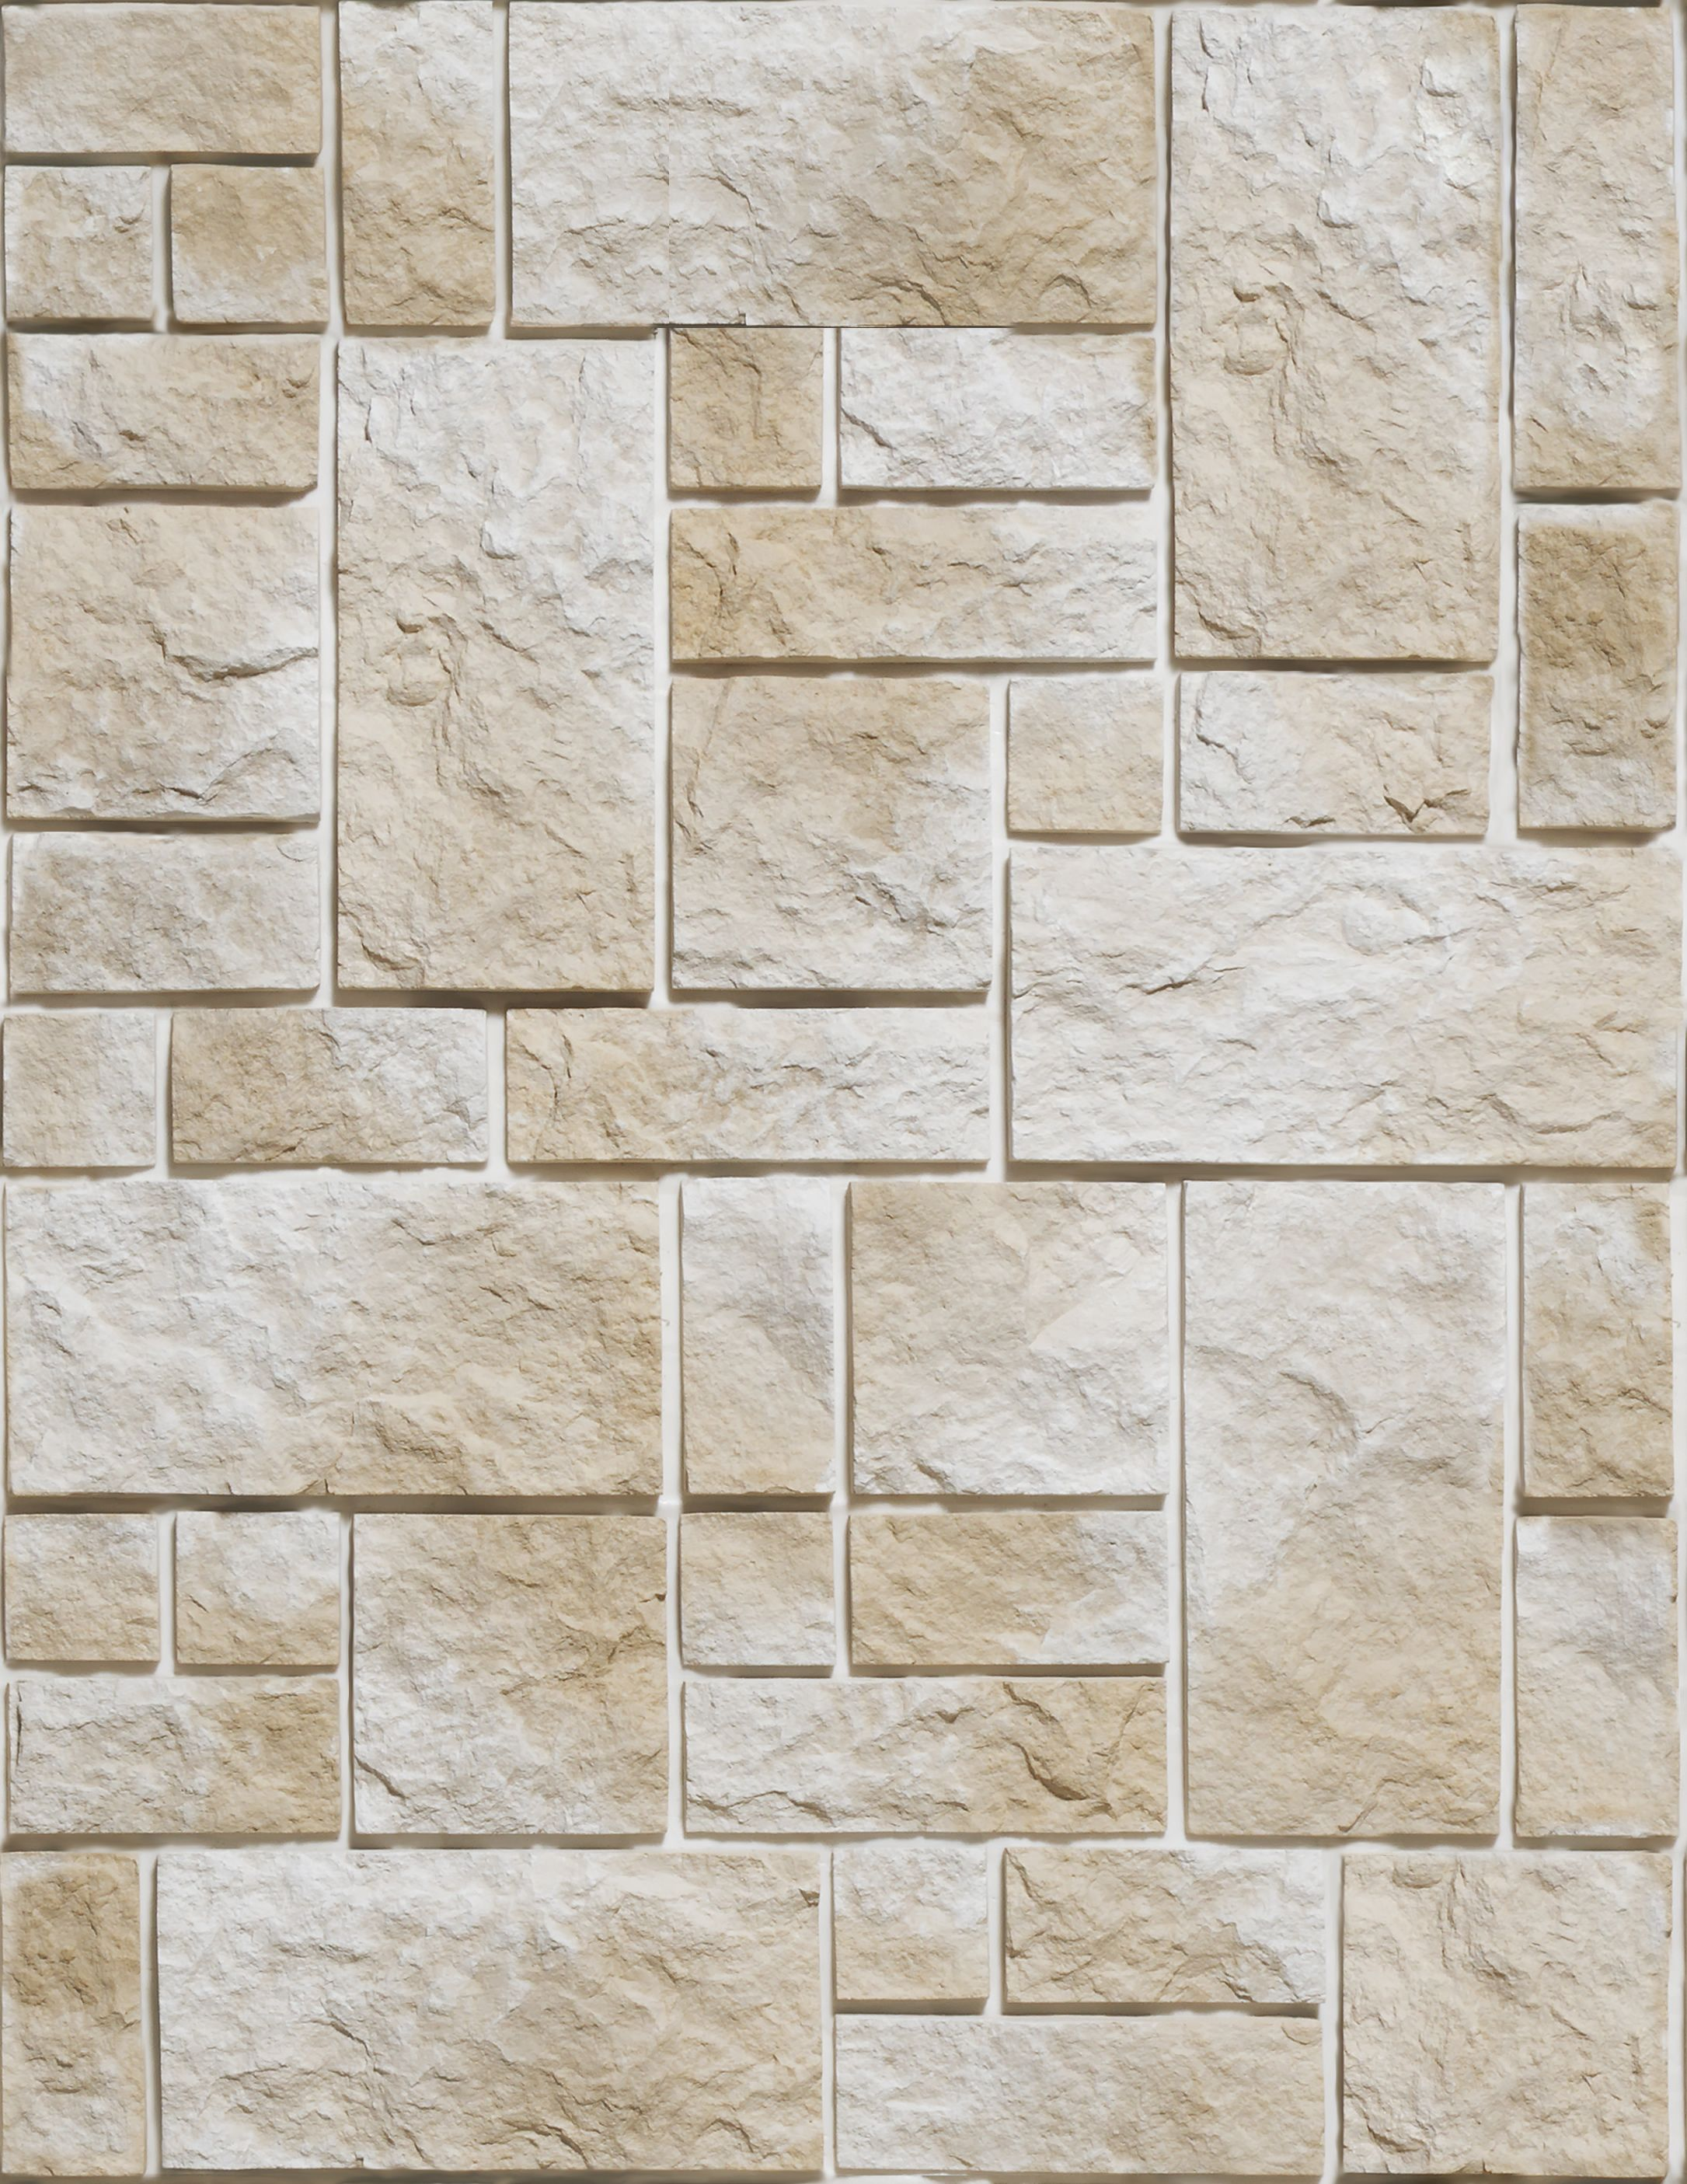 Stone hewn tile texture wall download photo stone for Exterior floor tiles texture